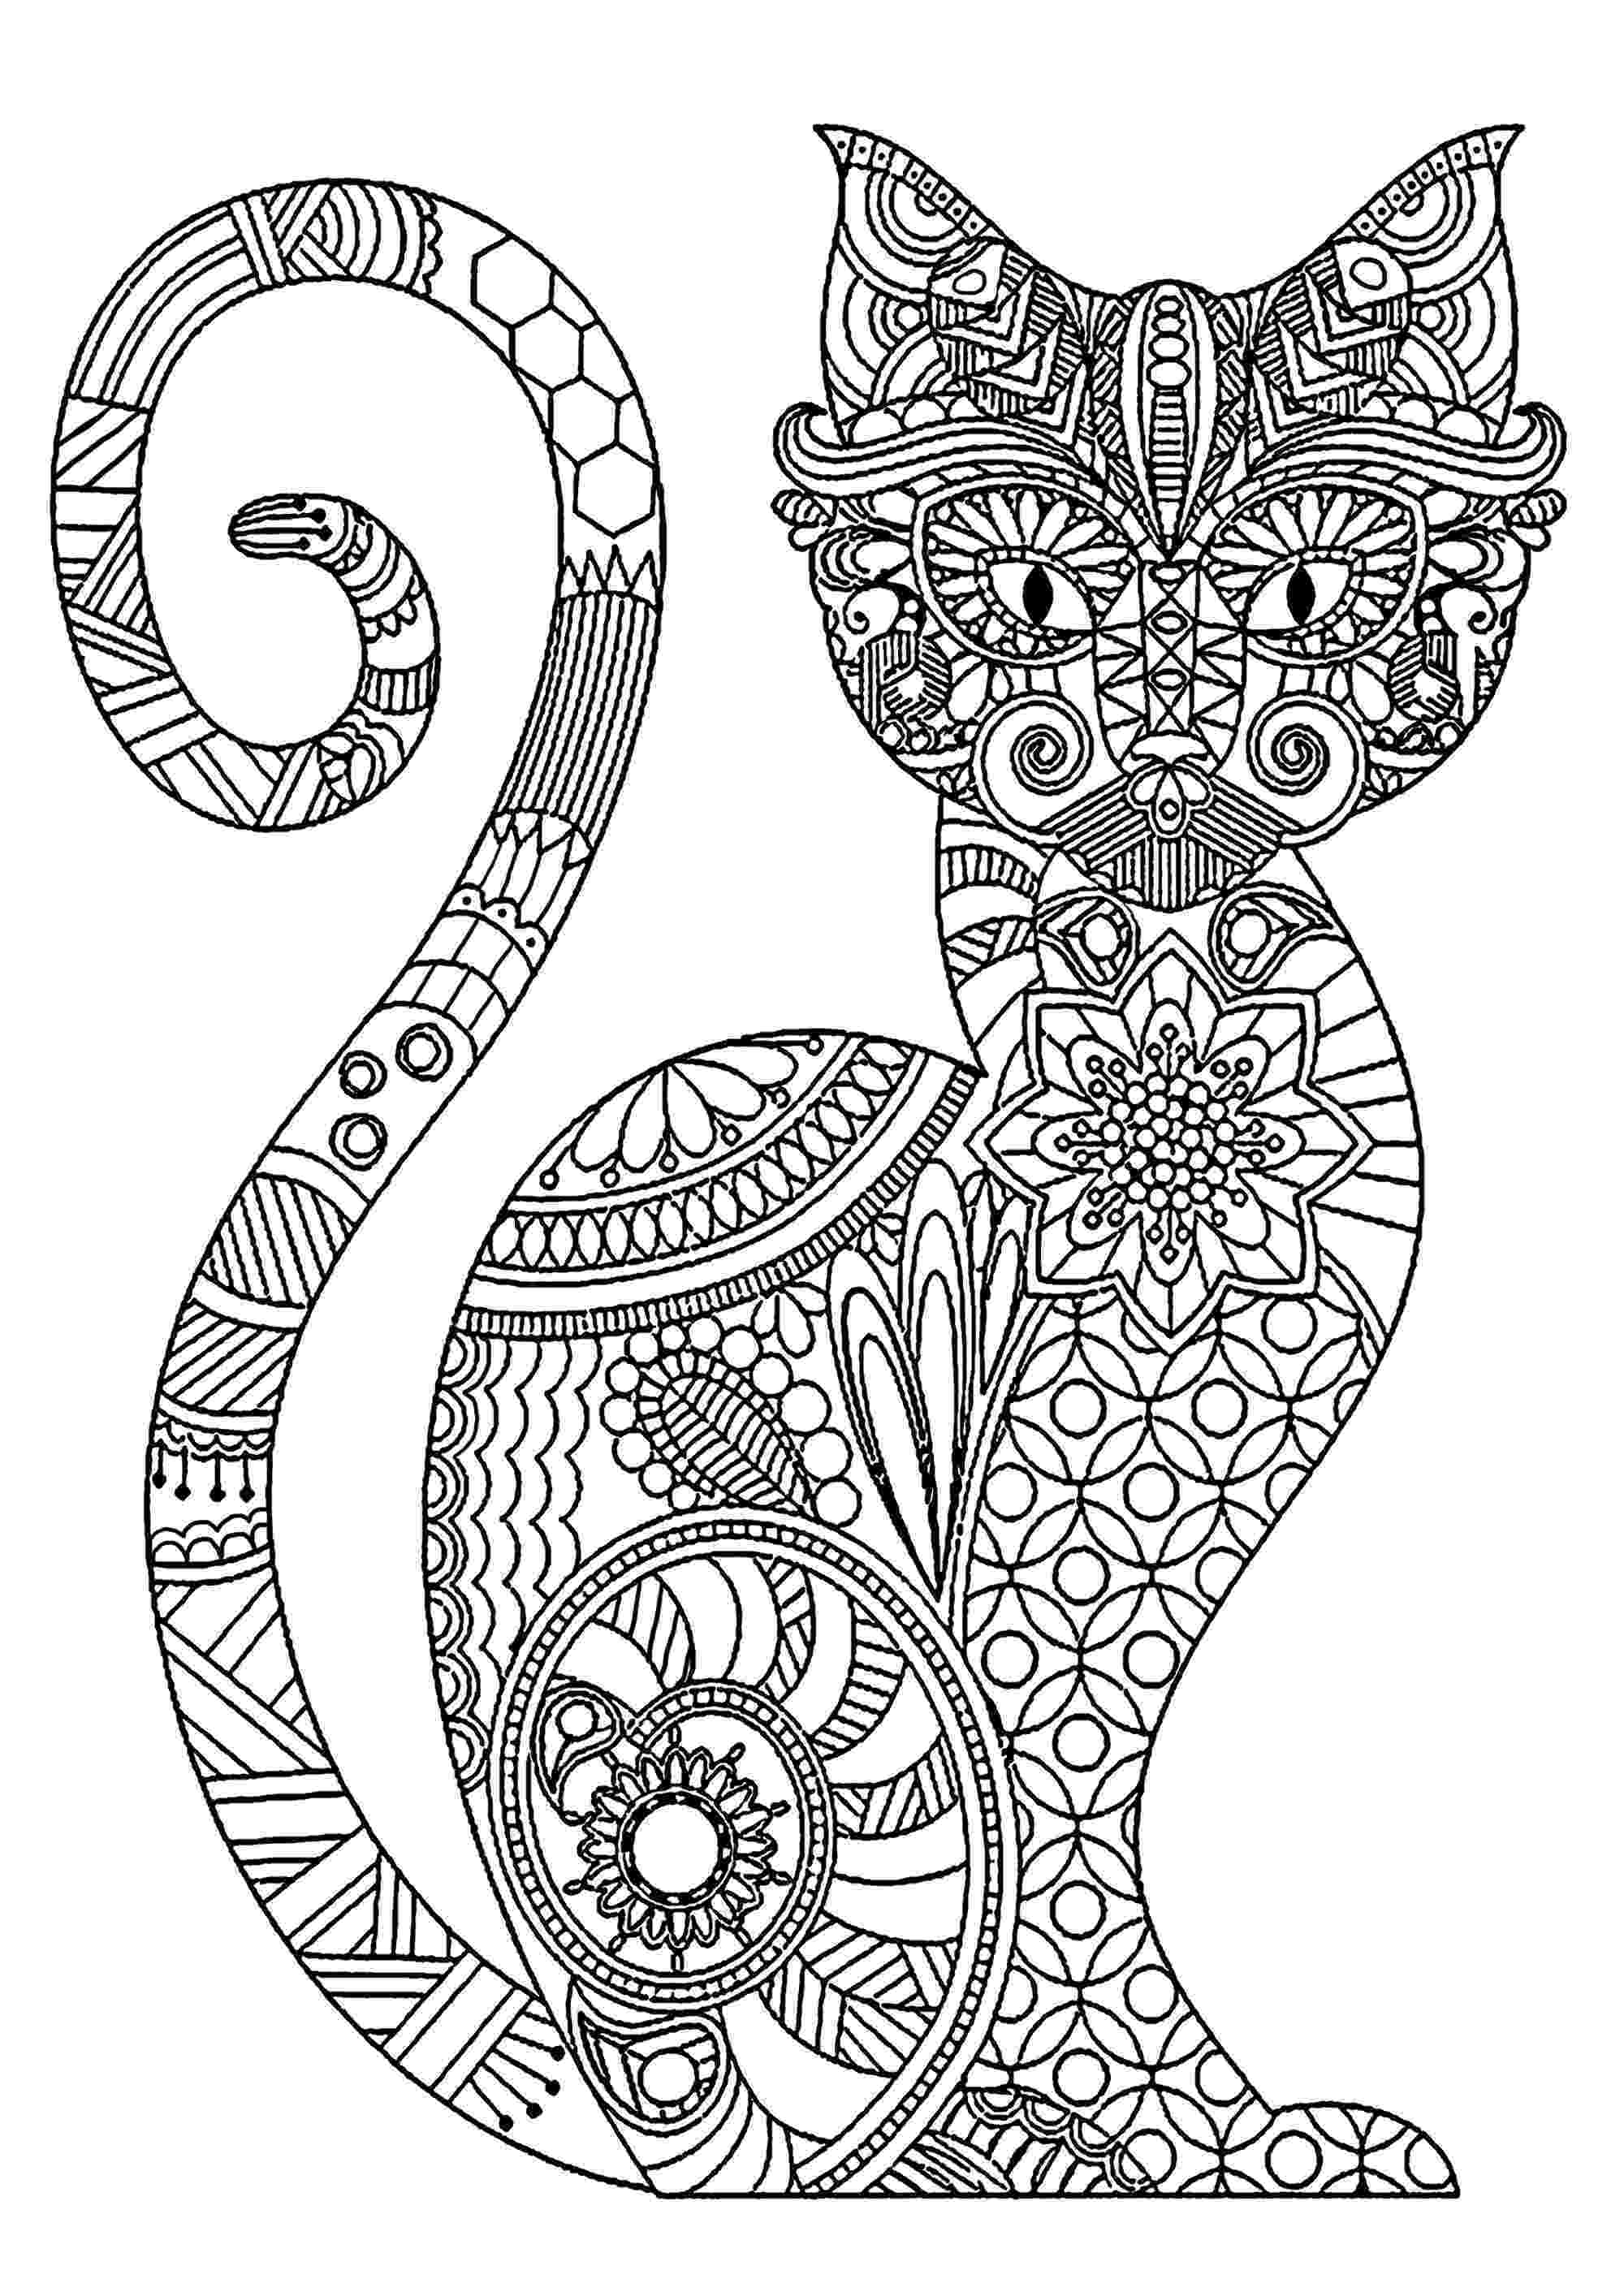 free online coloring pages for adults cats free coloring pages online free for adults coloring cats pages